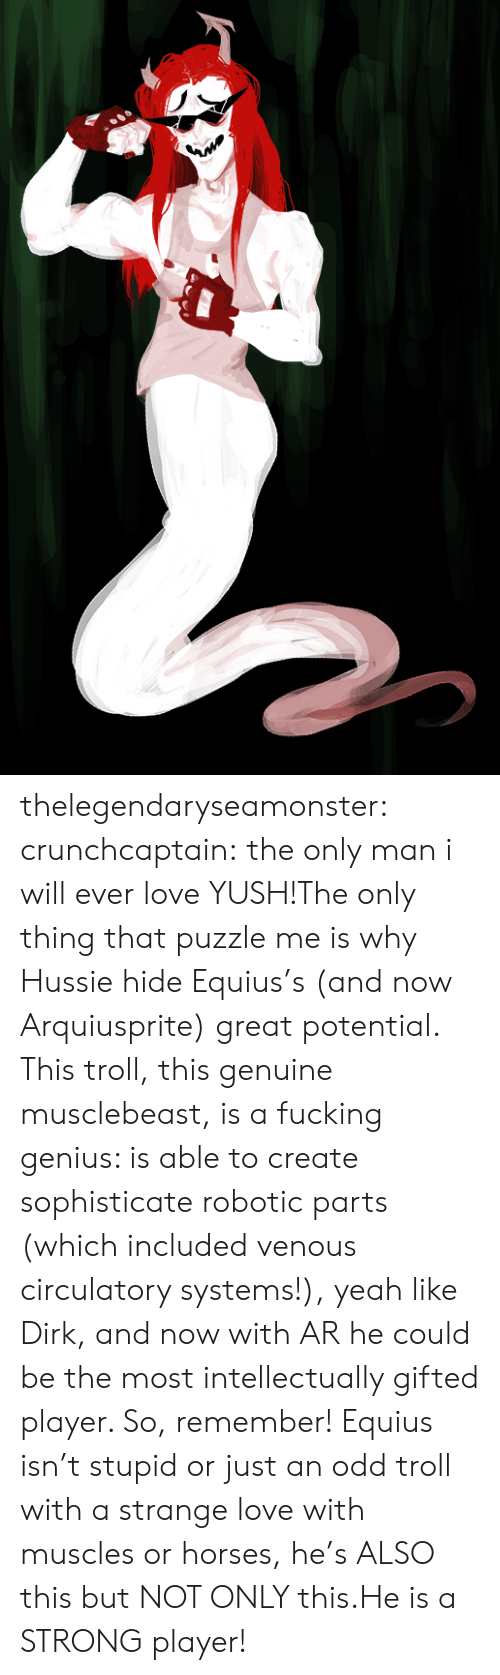 Fucking, Horses, and Love: thelegendaryseamonster: crunchcaptain:  the only man i will ever love  YUSH!The only thing that puzzle me is why Hussie hide Equius's (and now Arquiusprite) great potential. This troll, this genuine musclebeast, is a fucking genius: is able to create sophisticate robotic parts (which included venous circulatory systems!), yeah like Dirk, and now with AR he could be the most intellectually gifted player. So, remember! Equius isn't stupid or just an odd troll with a strange love with muscles or horses, he's ALSO this but NOT ONLY this.He is a STRONG player!